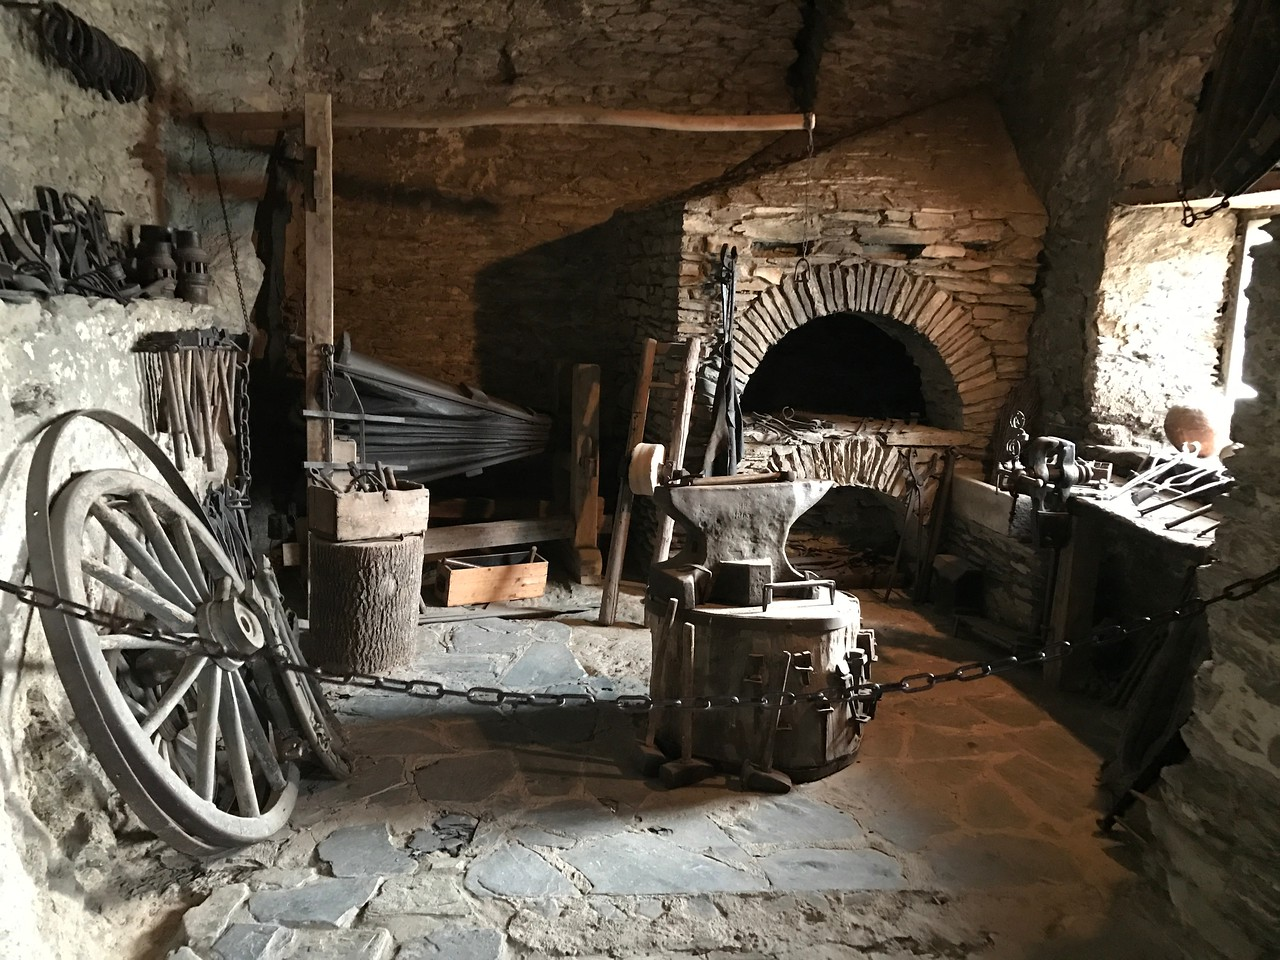 The workshop where everything from armor to wheels were made and repaired.